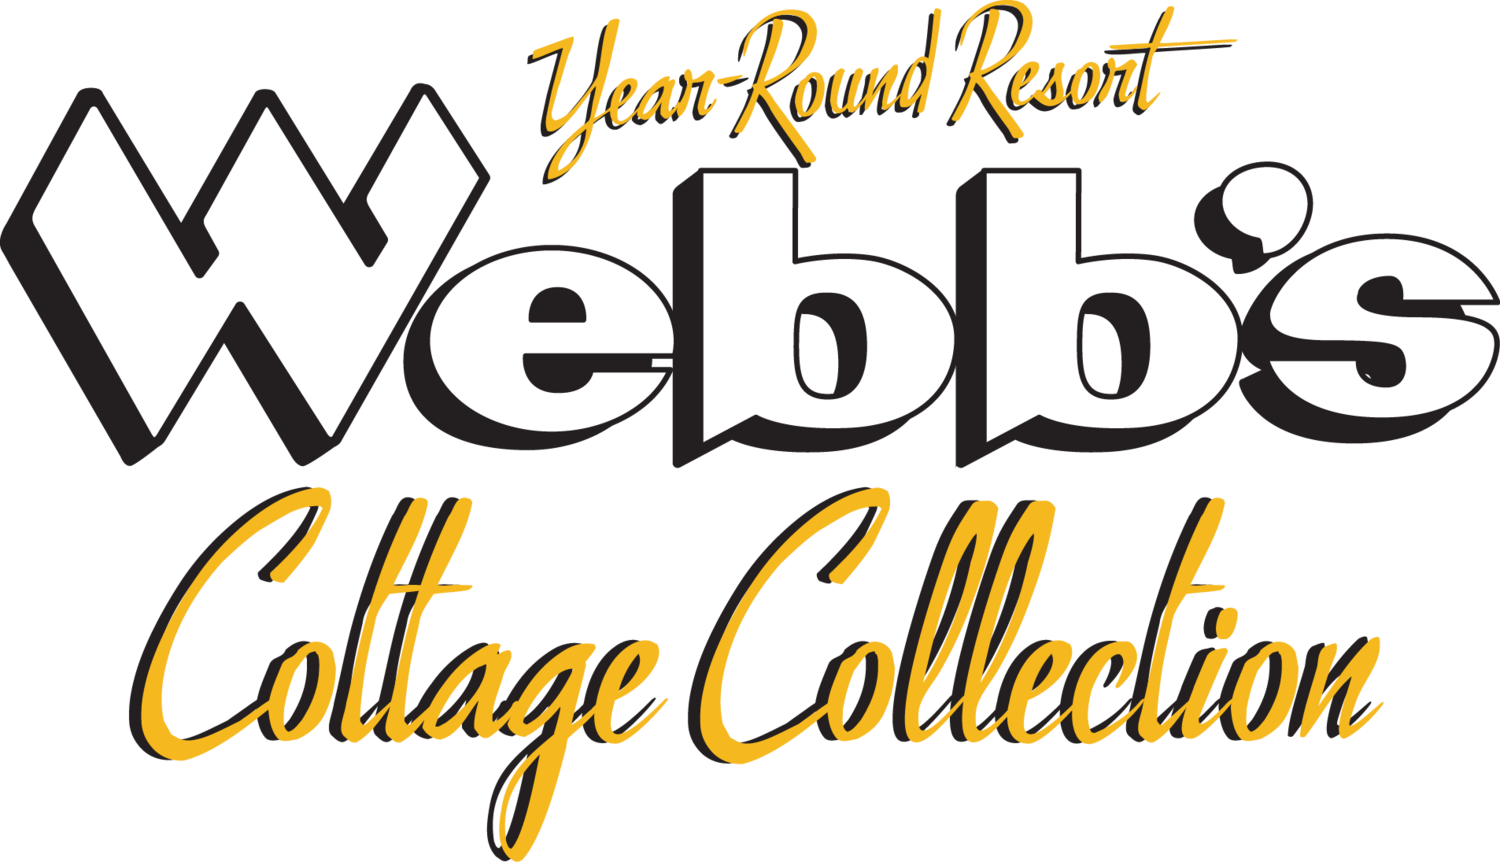 Webb's Cottage Collection